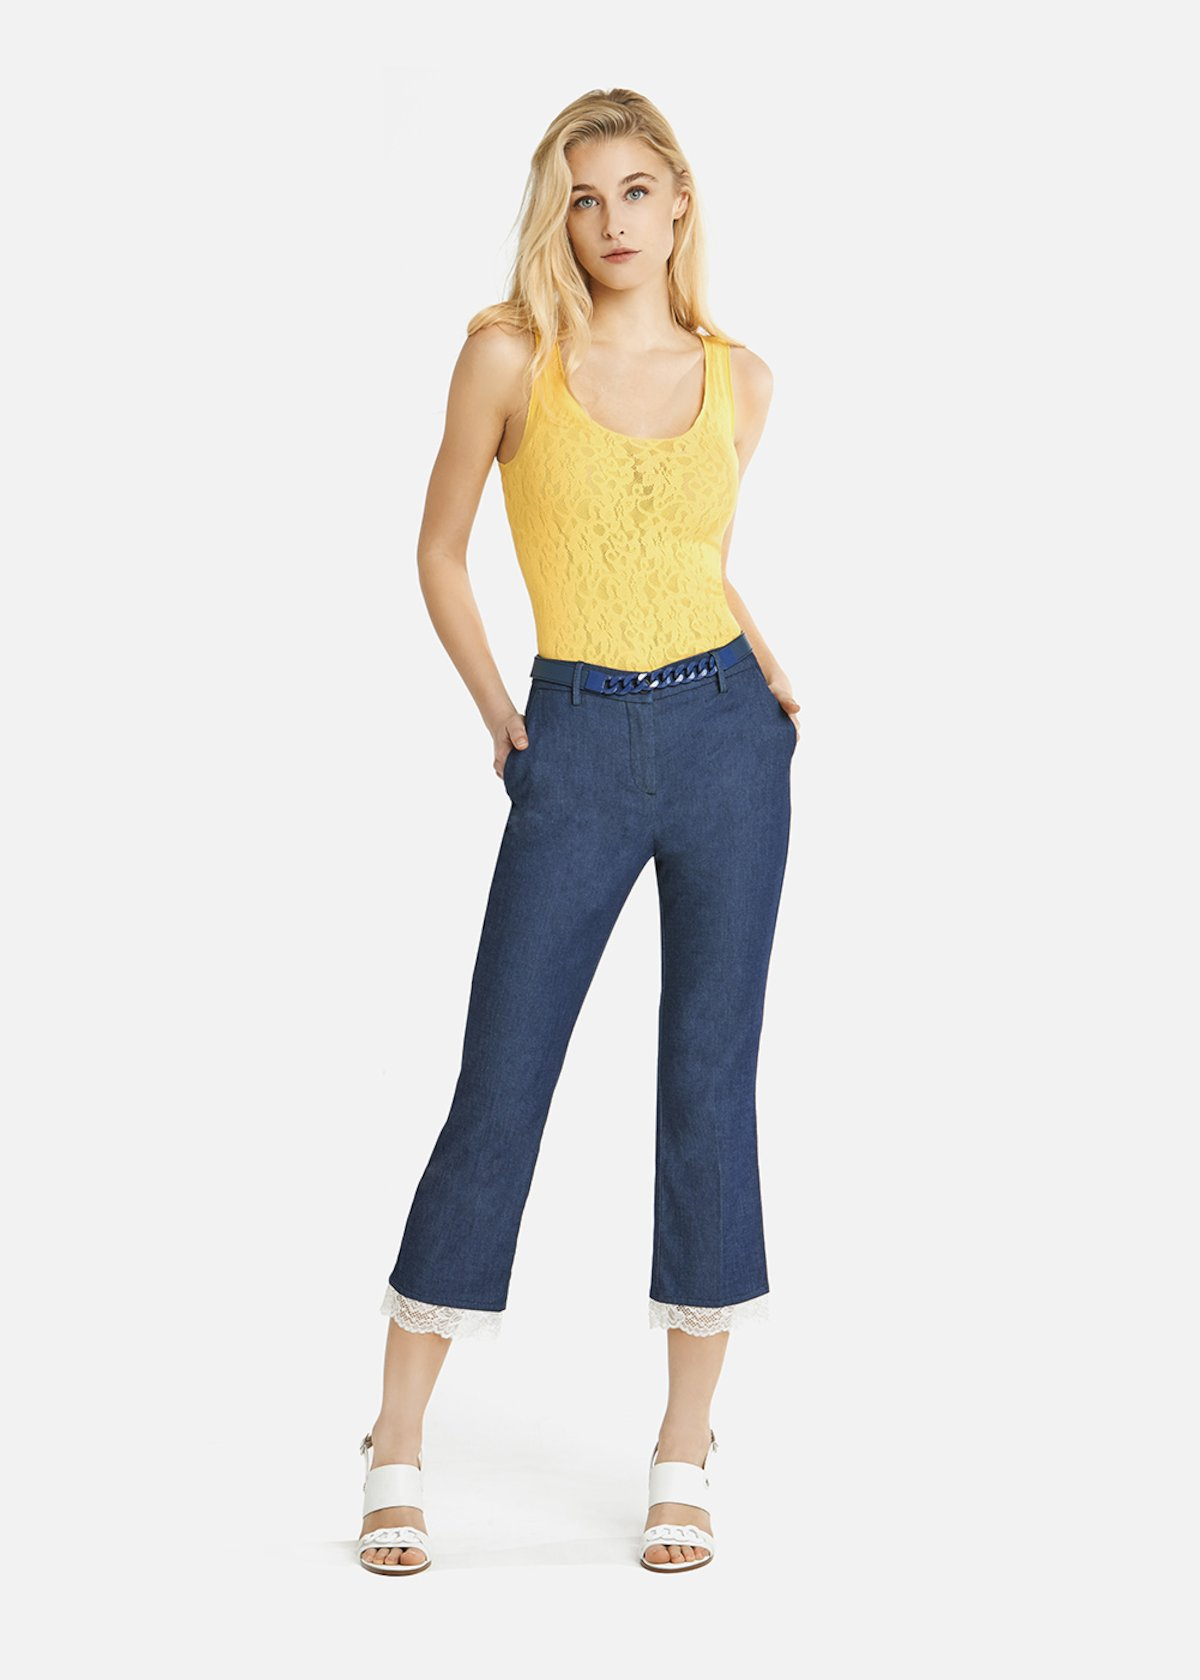 Perry capri trousers in dark chambray with a white lace insert on the bottom of the leg - Denim